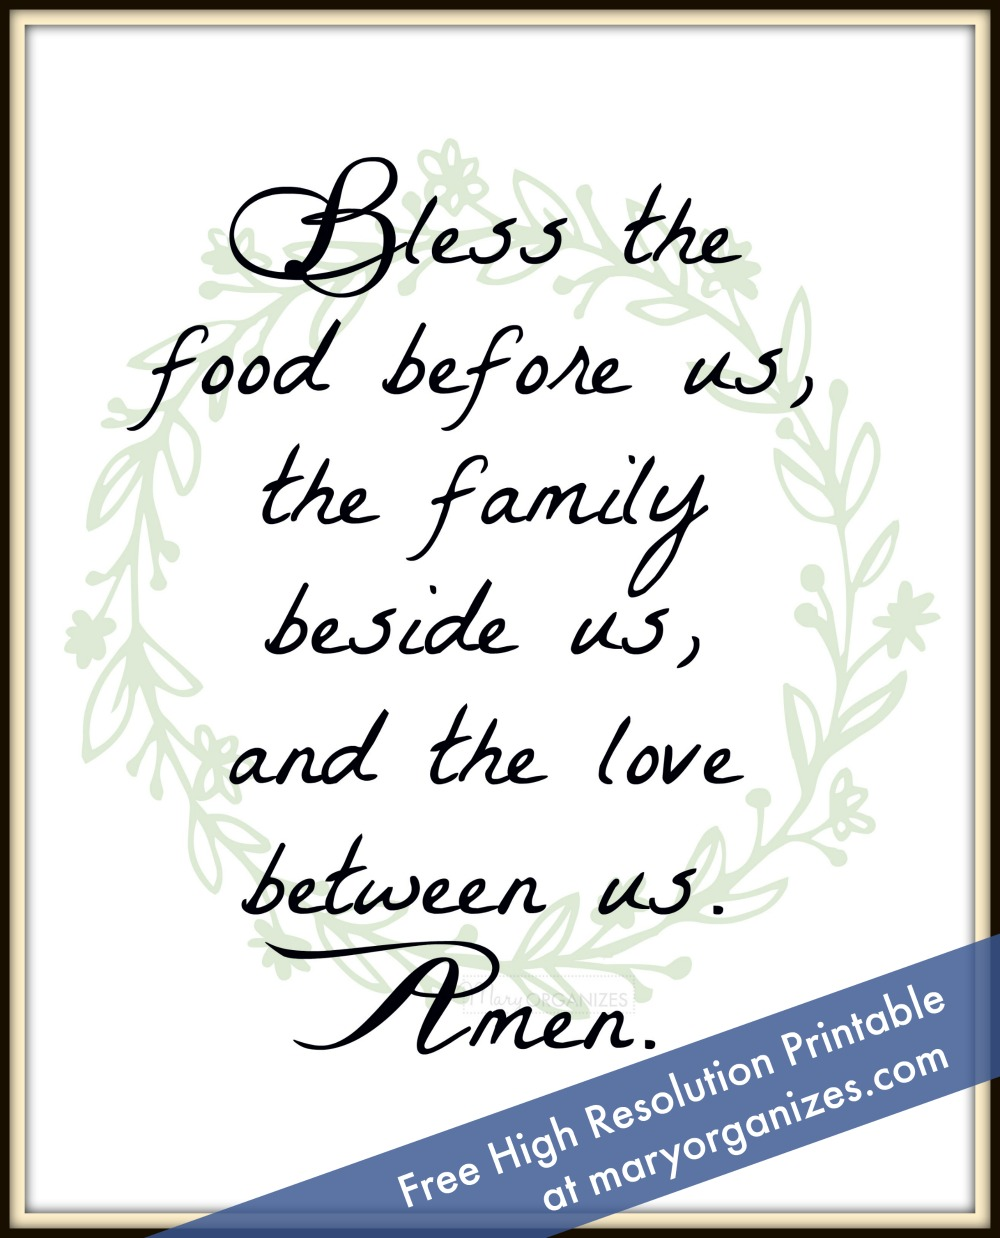 graphic about Bless the Food Before Us Printable titled Kitchen area 7 days - Get pleasure from Residence Dilemma -